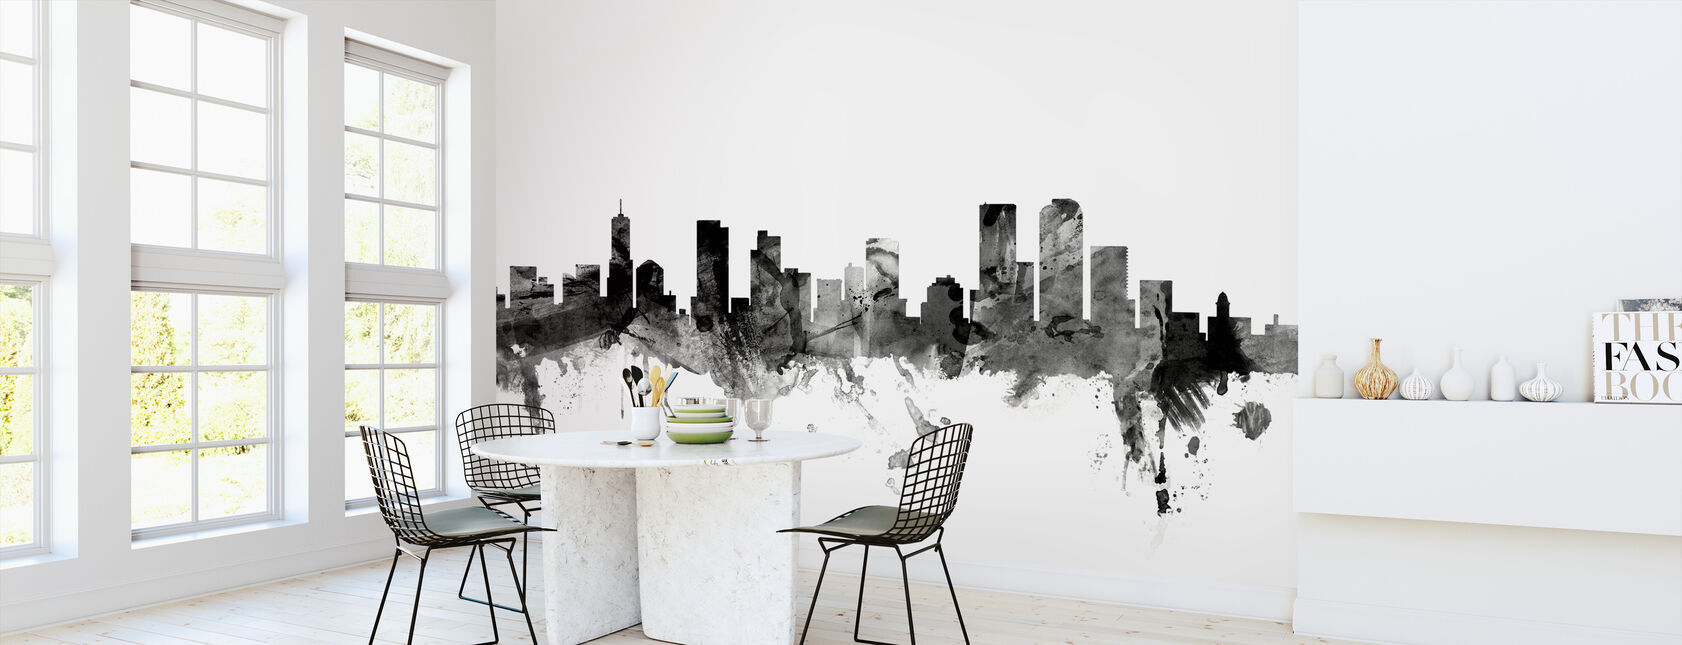 Denver Colorado Skyline Black - Wallpaper - Kitchen